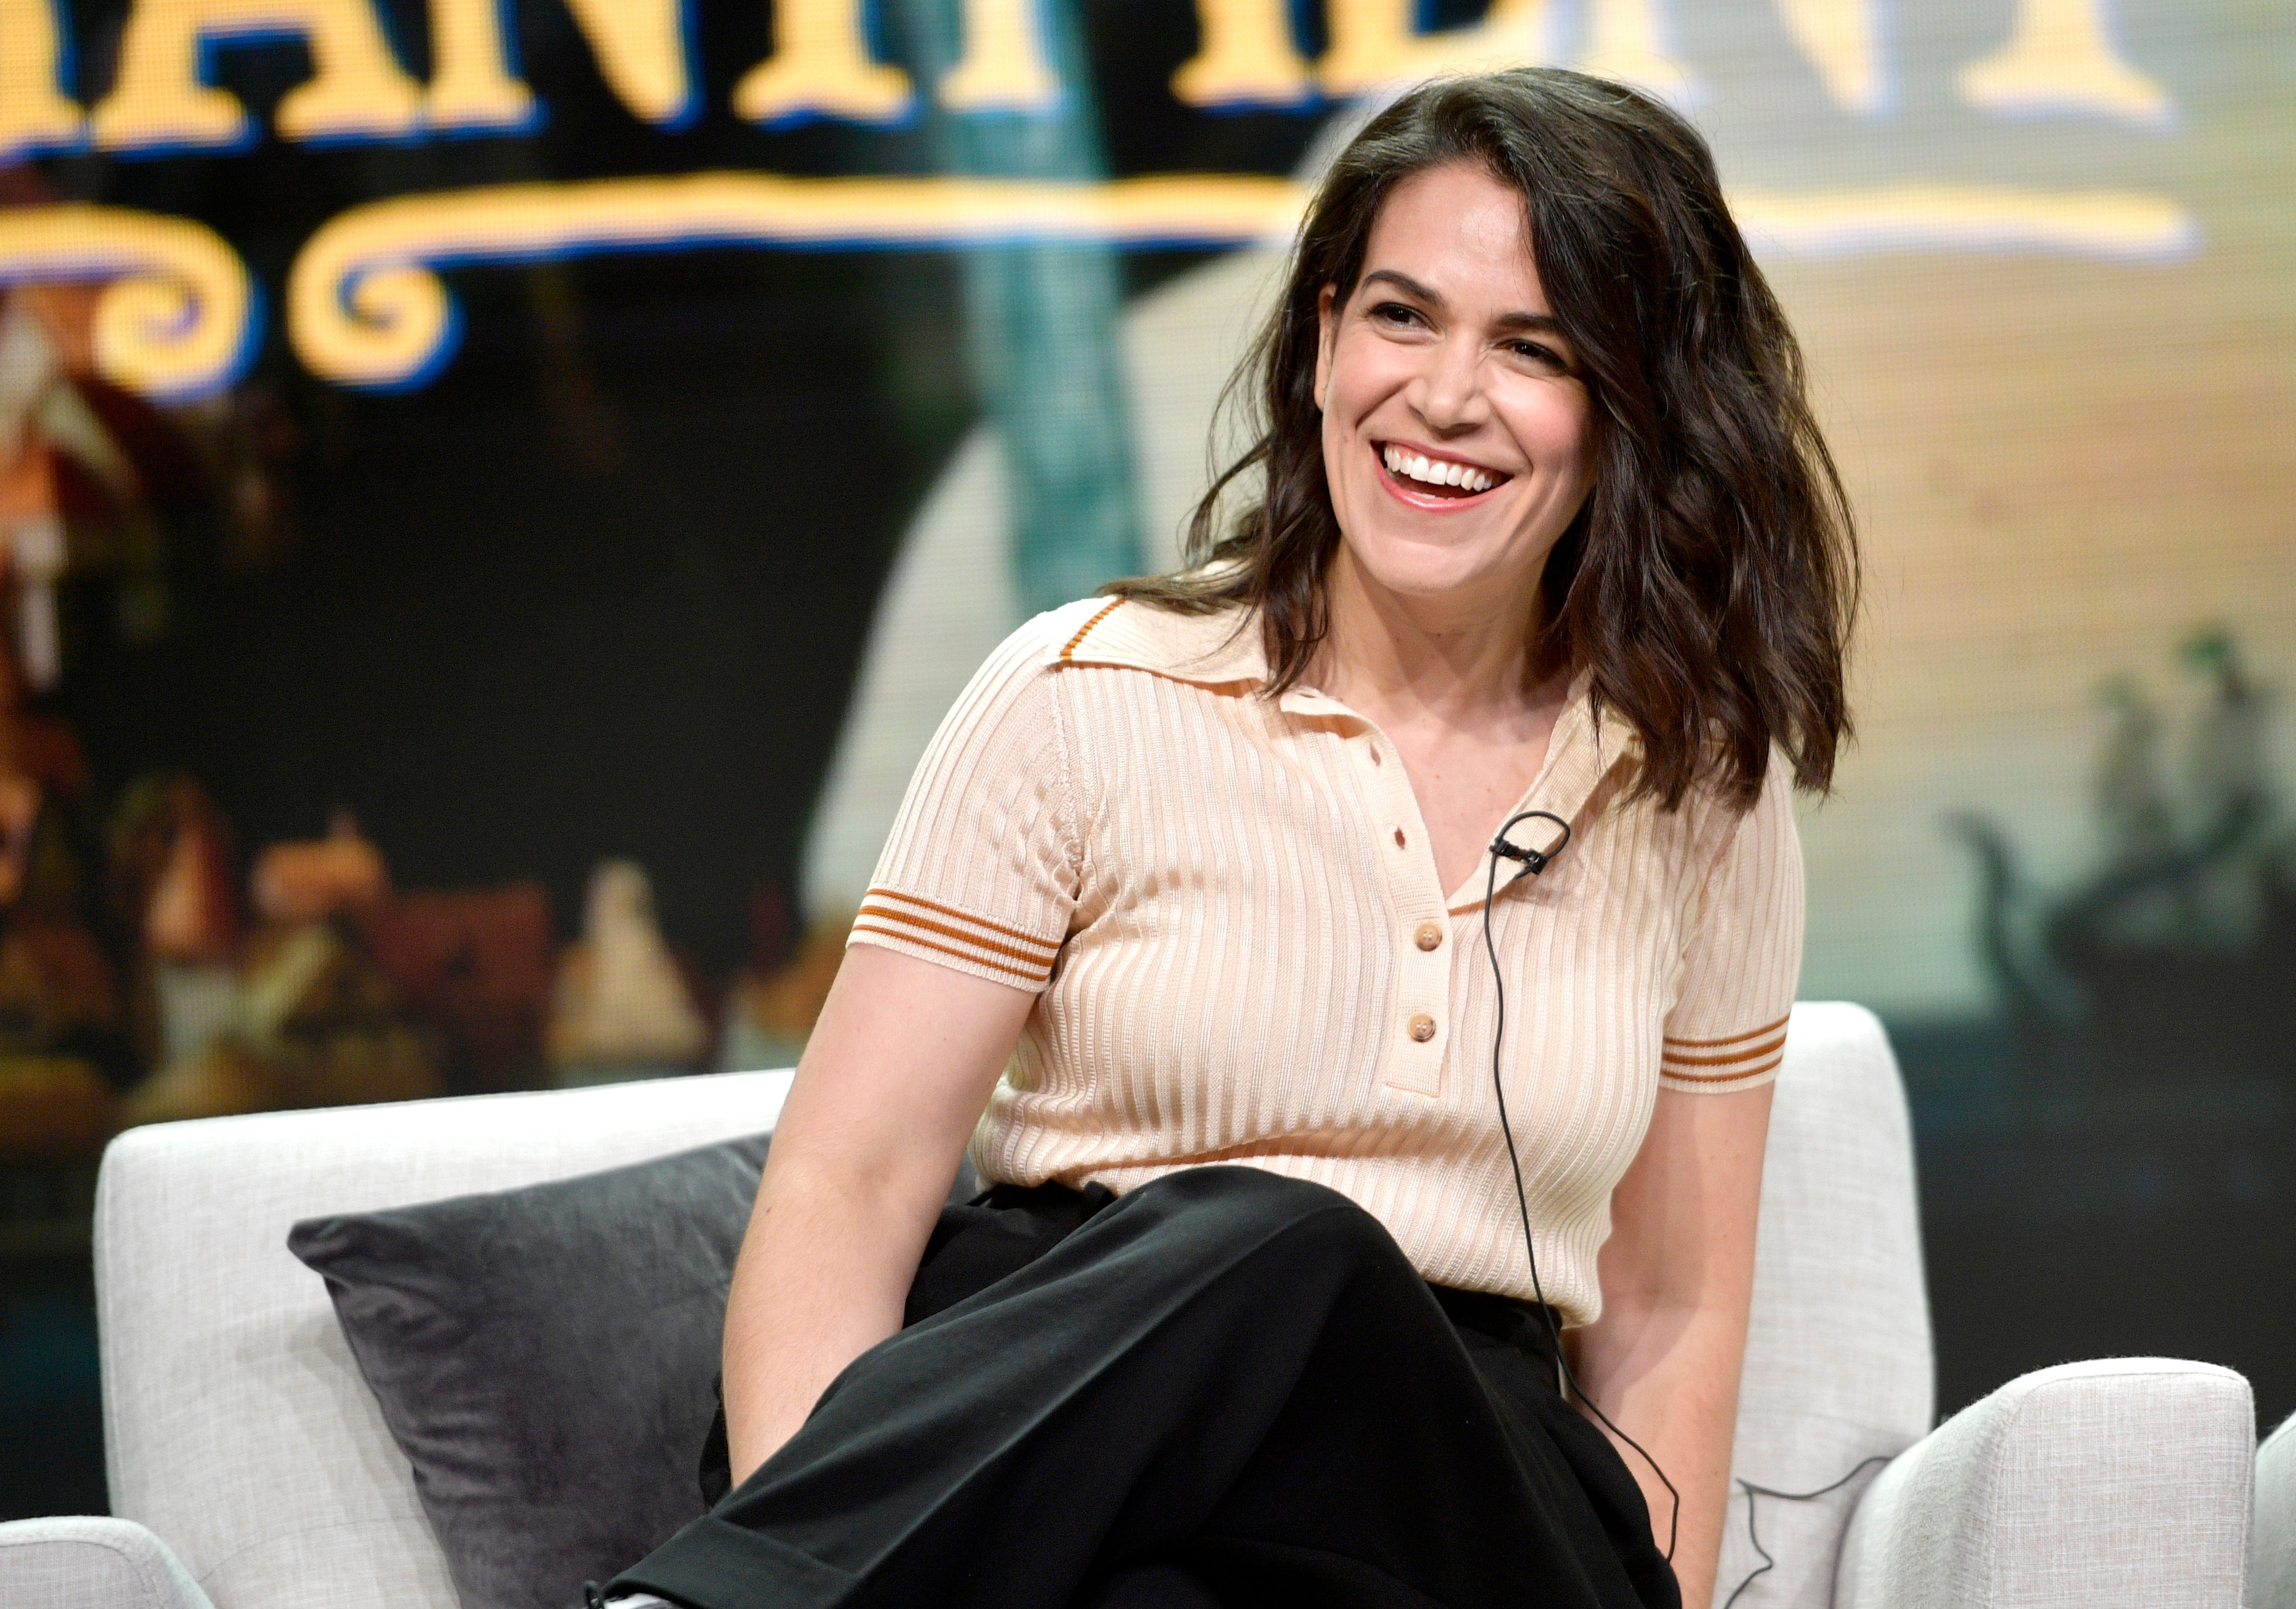 Abbi Jacobson, star and executive producer of 'Broad City,' voices Princess Bean in Matt Groening's Netflix animated series, 'Disenchantment.'